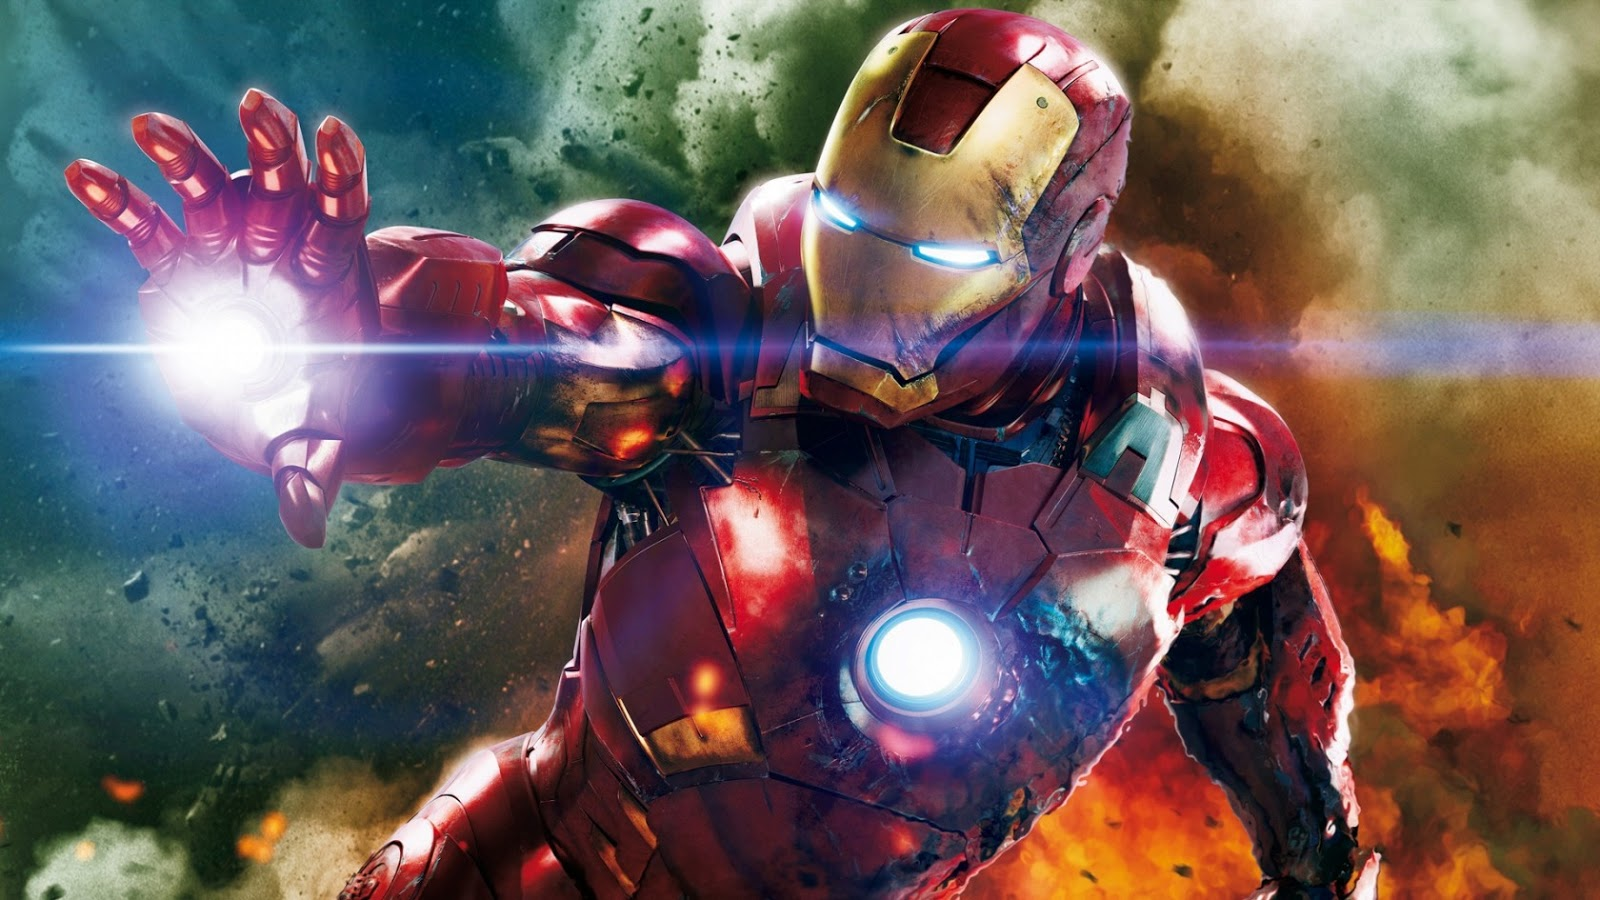 HD Wallpapers Of Iron Man 3